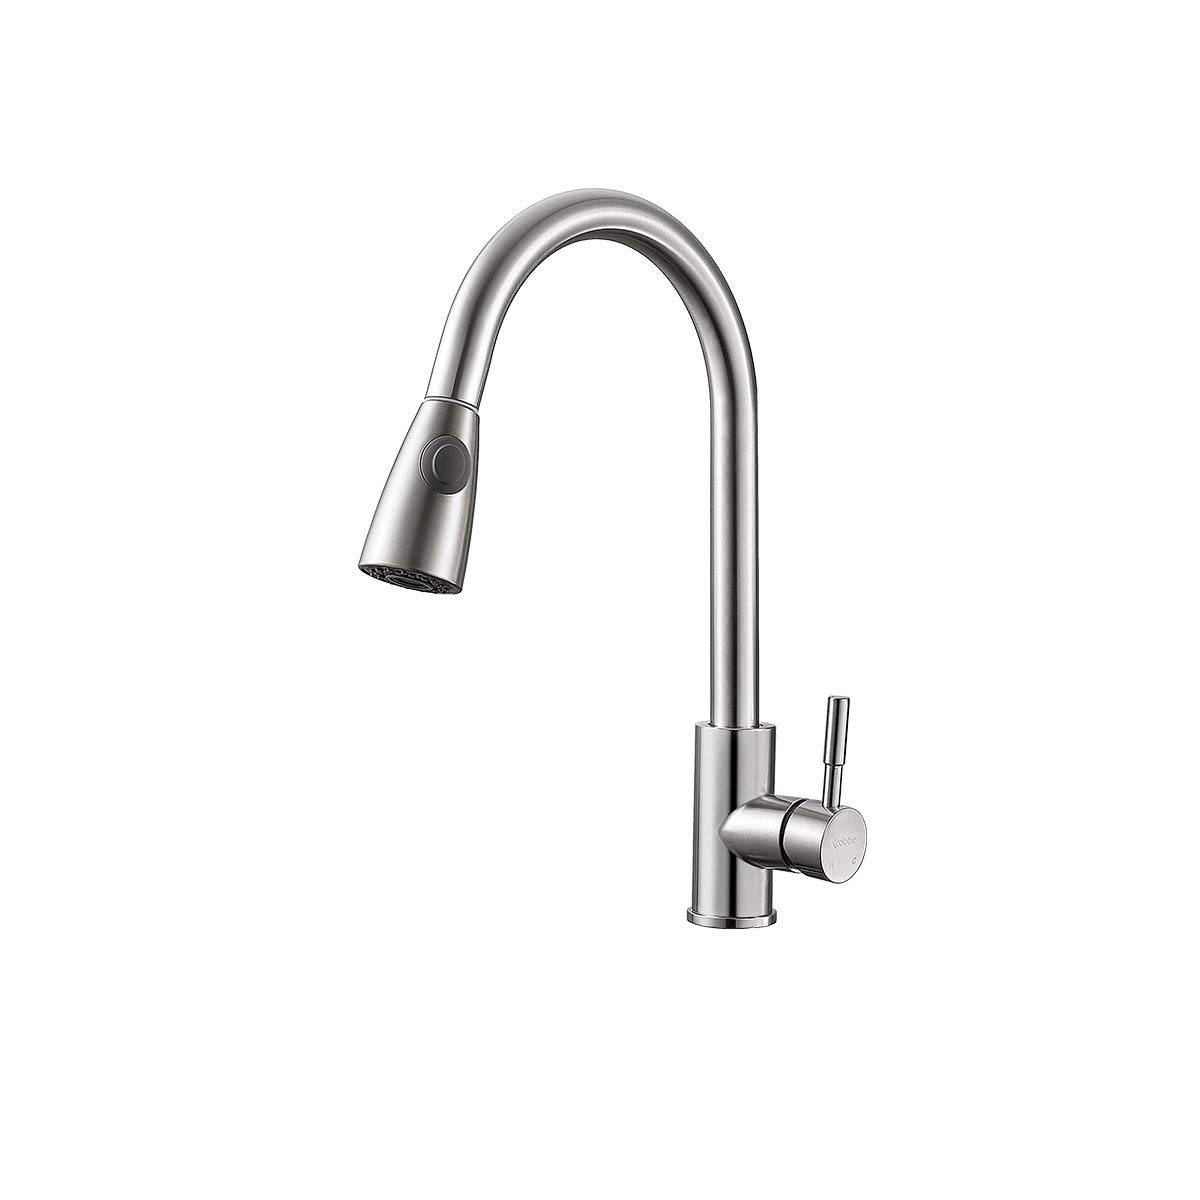 Silver 8haowenju High Quality Commercial Single Handle High Arc Brushed Pull Out Kitchen Faucet, Single Level Kitchen Sink Faucets, One-Handle Kitchen Faucet (color   Silver)